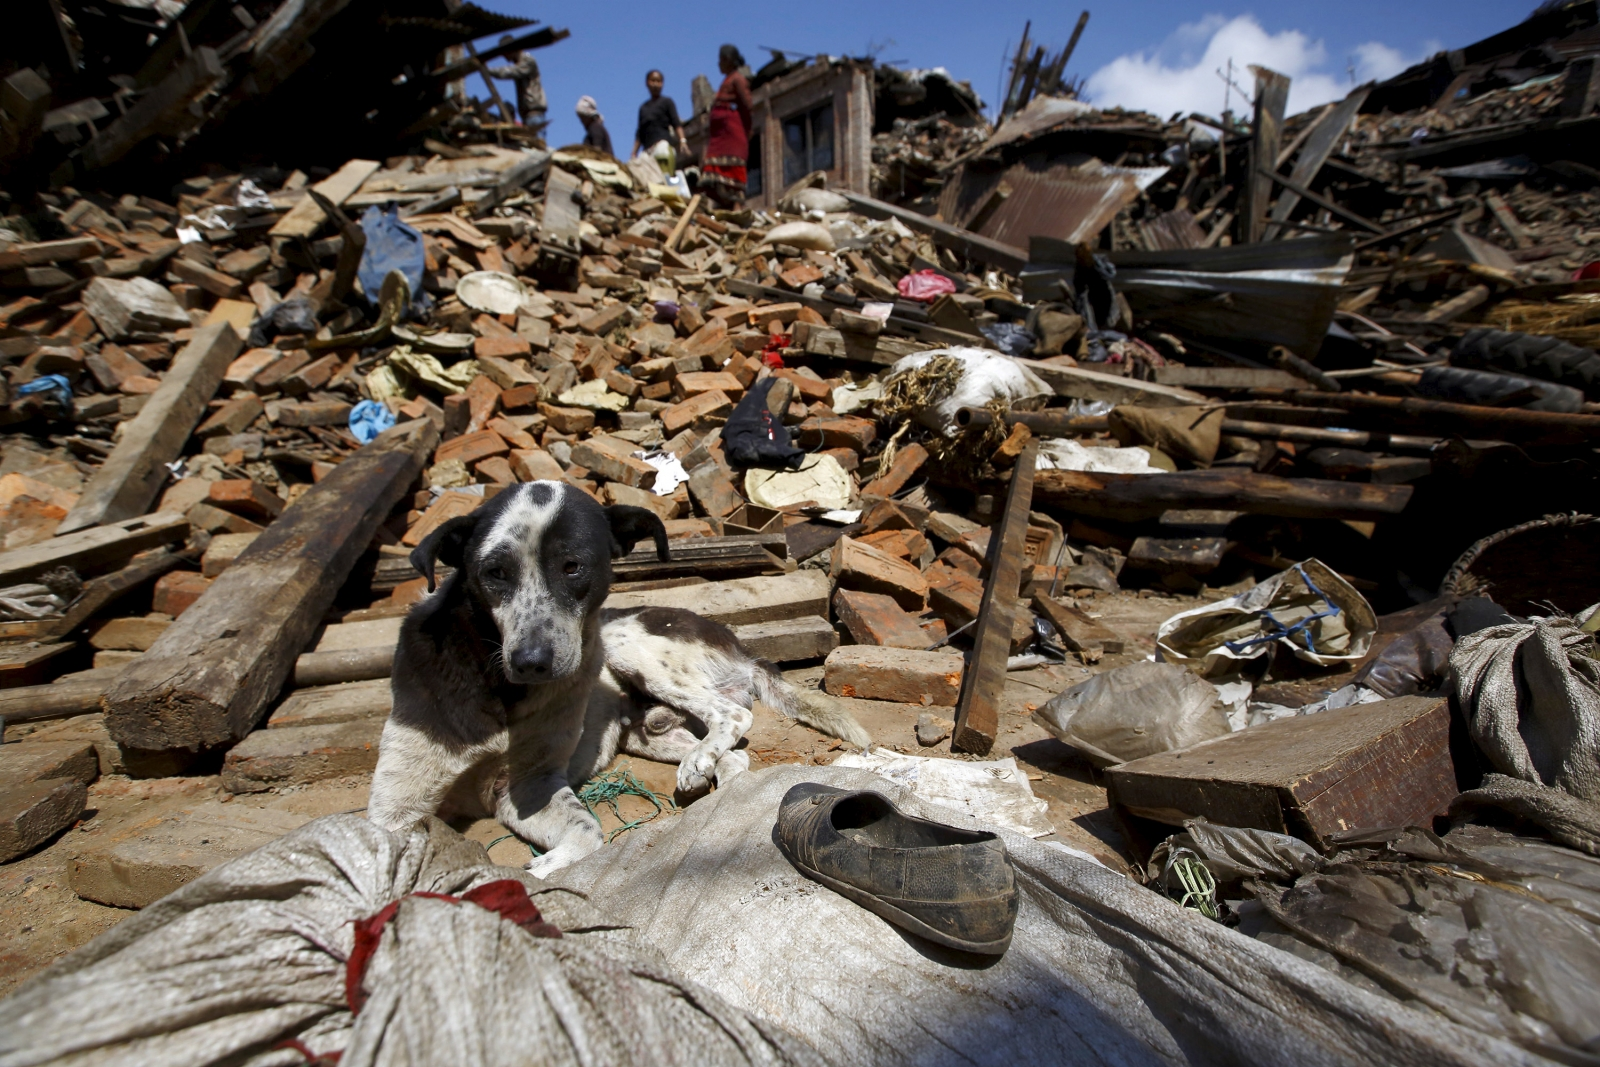 Predicting earthquakes: A mixed outcome, but improving ...